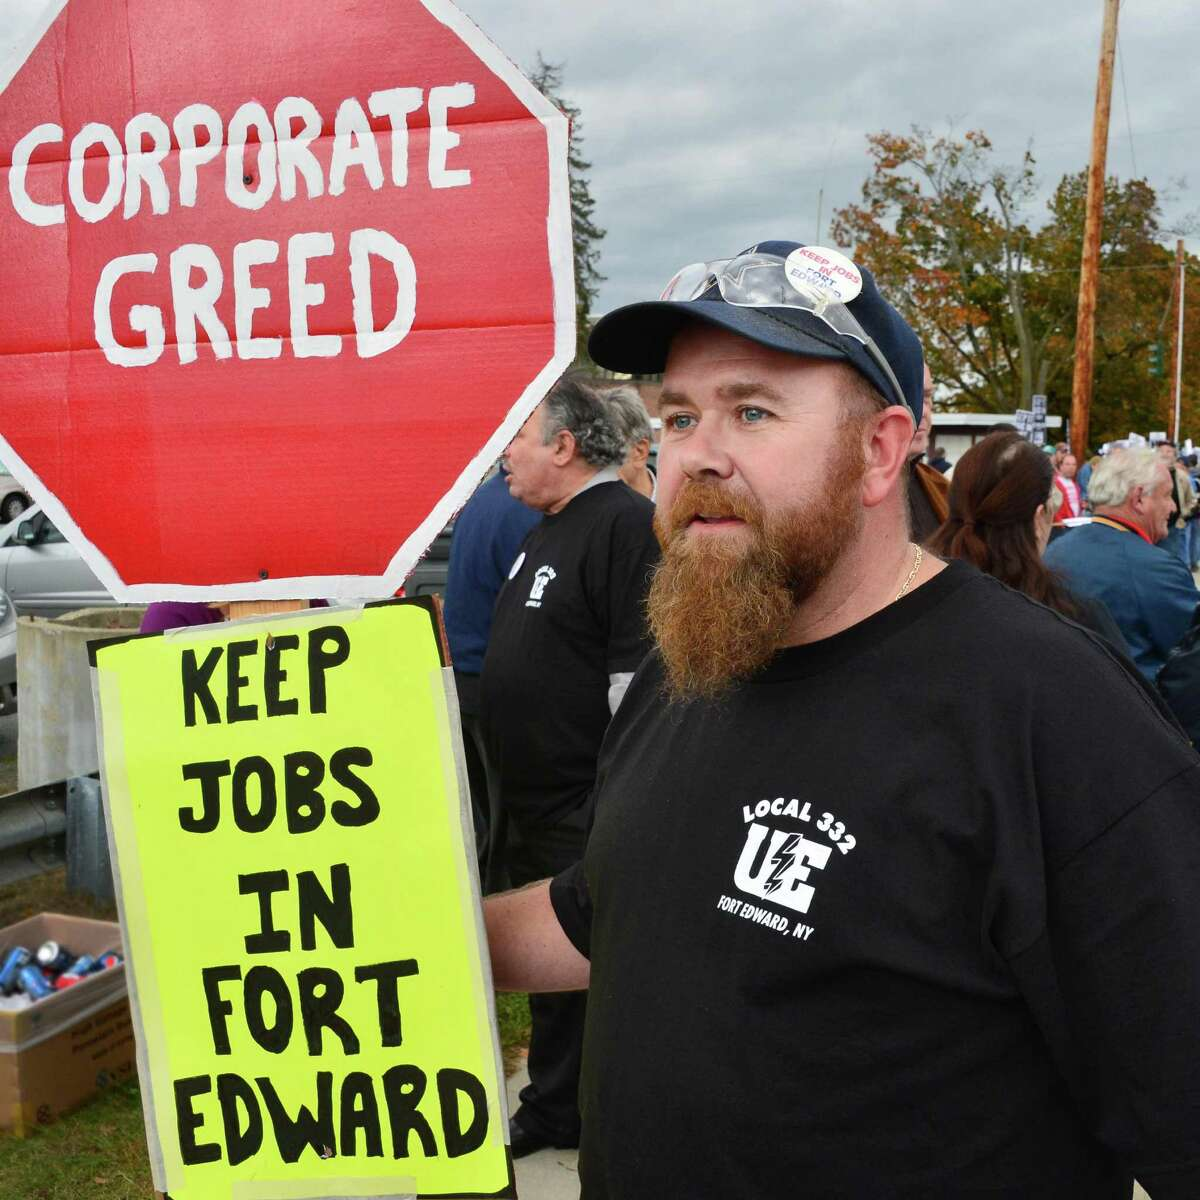 Roger Harrington, a Fort Edward assembly worker of 10 years, carries a sign as he and other union workers protest GE's plans to close the plant Friday afternoon, Oct. 18, 2013, in Fort Edward, N.Y. (John Carl D'Annibale / Times Union)